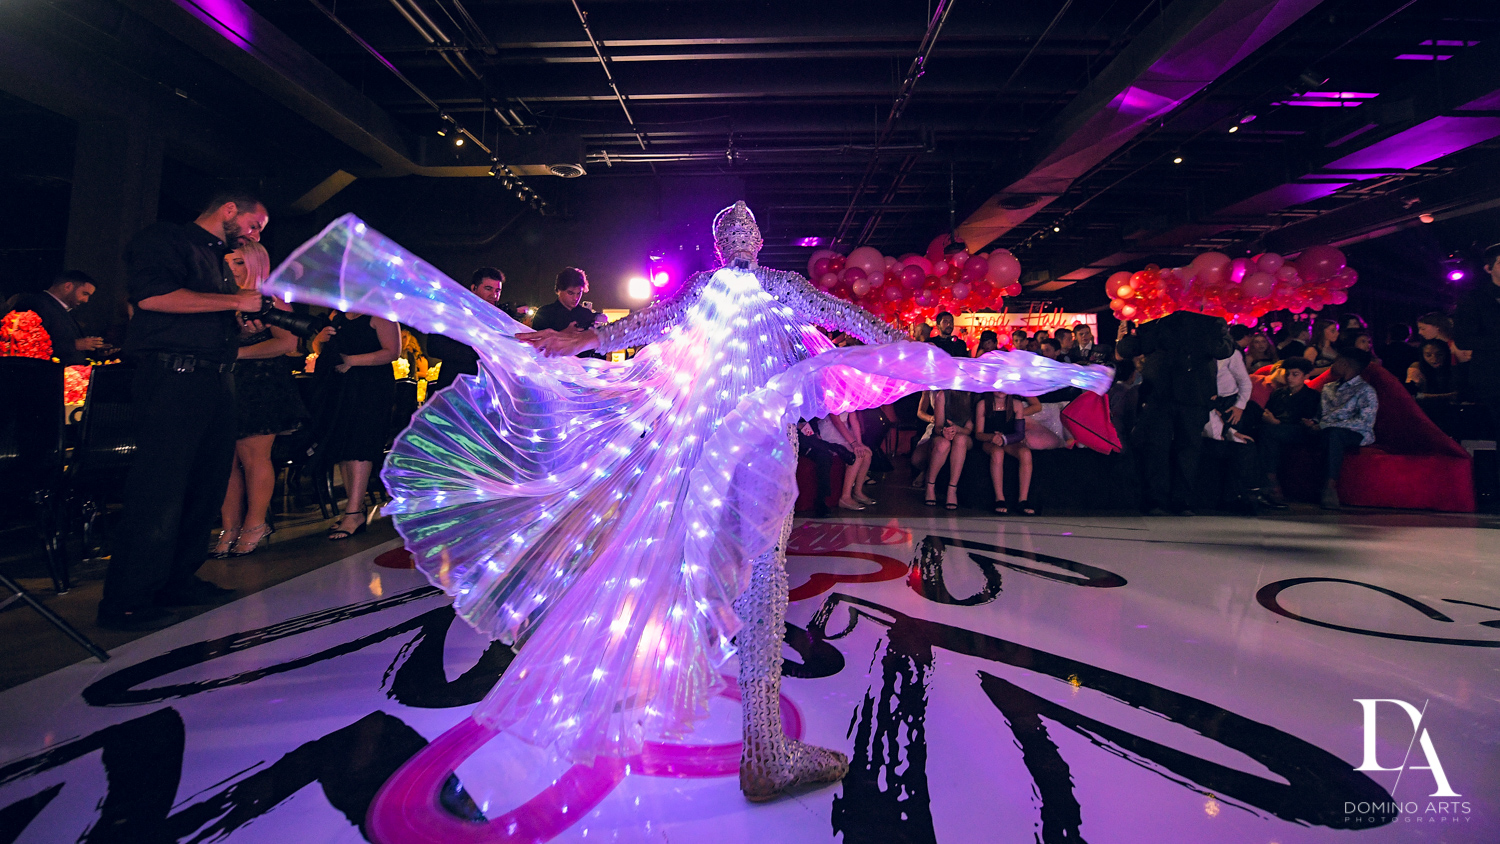 live models for hire at Fashion Theme Bat Mitzvah at Gallery of Amazing Things by Domino Arts Photography